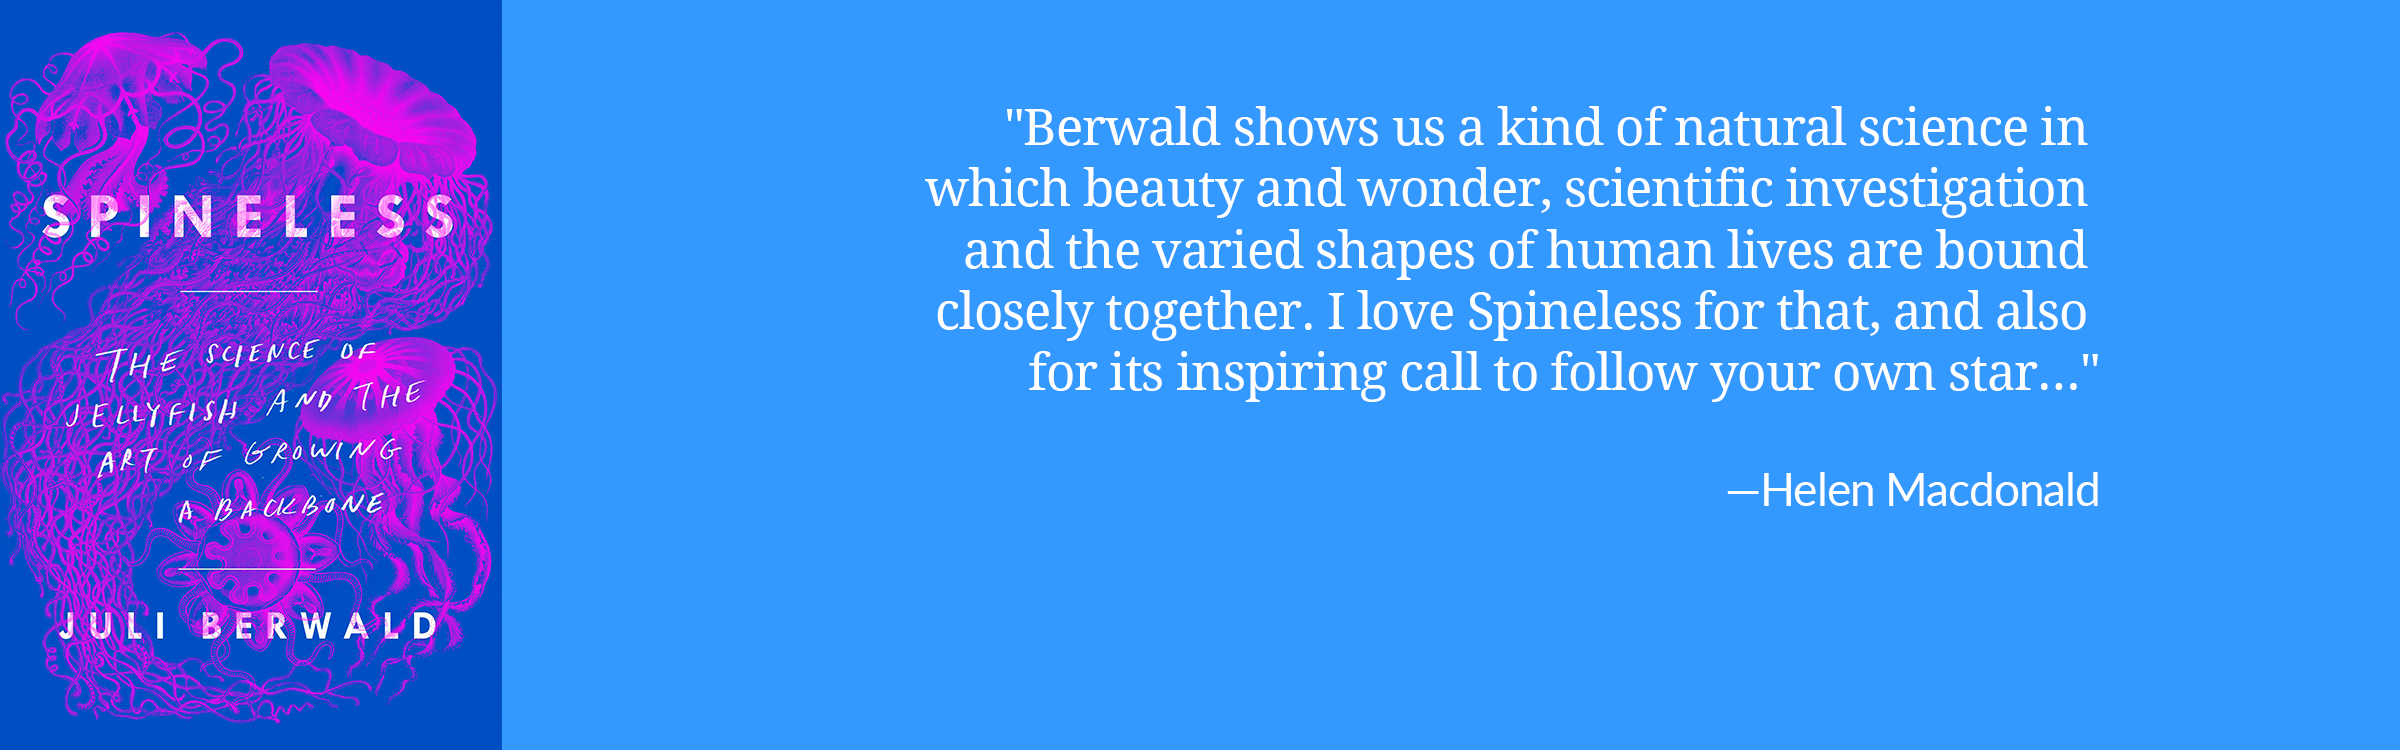 Berwald shows us a kind of natural science in which beauty and wonder, scientific investigation and the varied shapes of human lives are bound closely together. I love Spineless for that, and also for its inspiring call to follow your own star… from Helen Macdonald